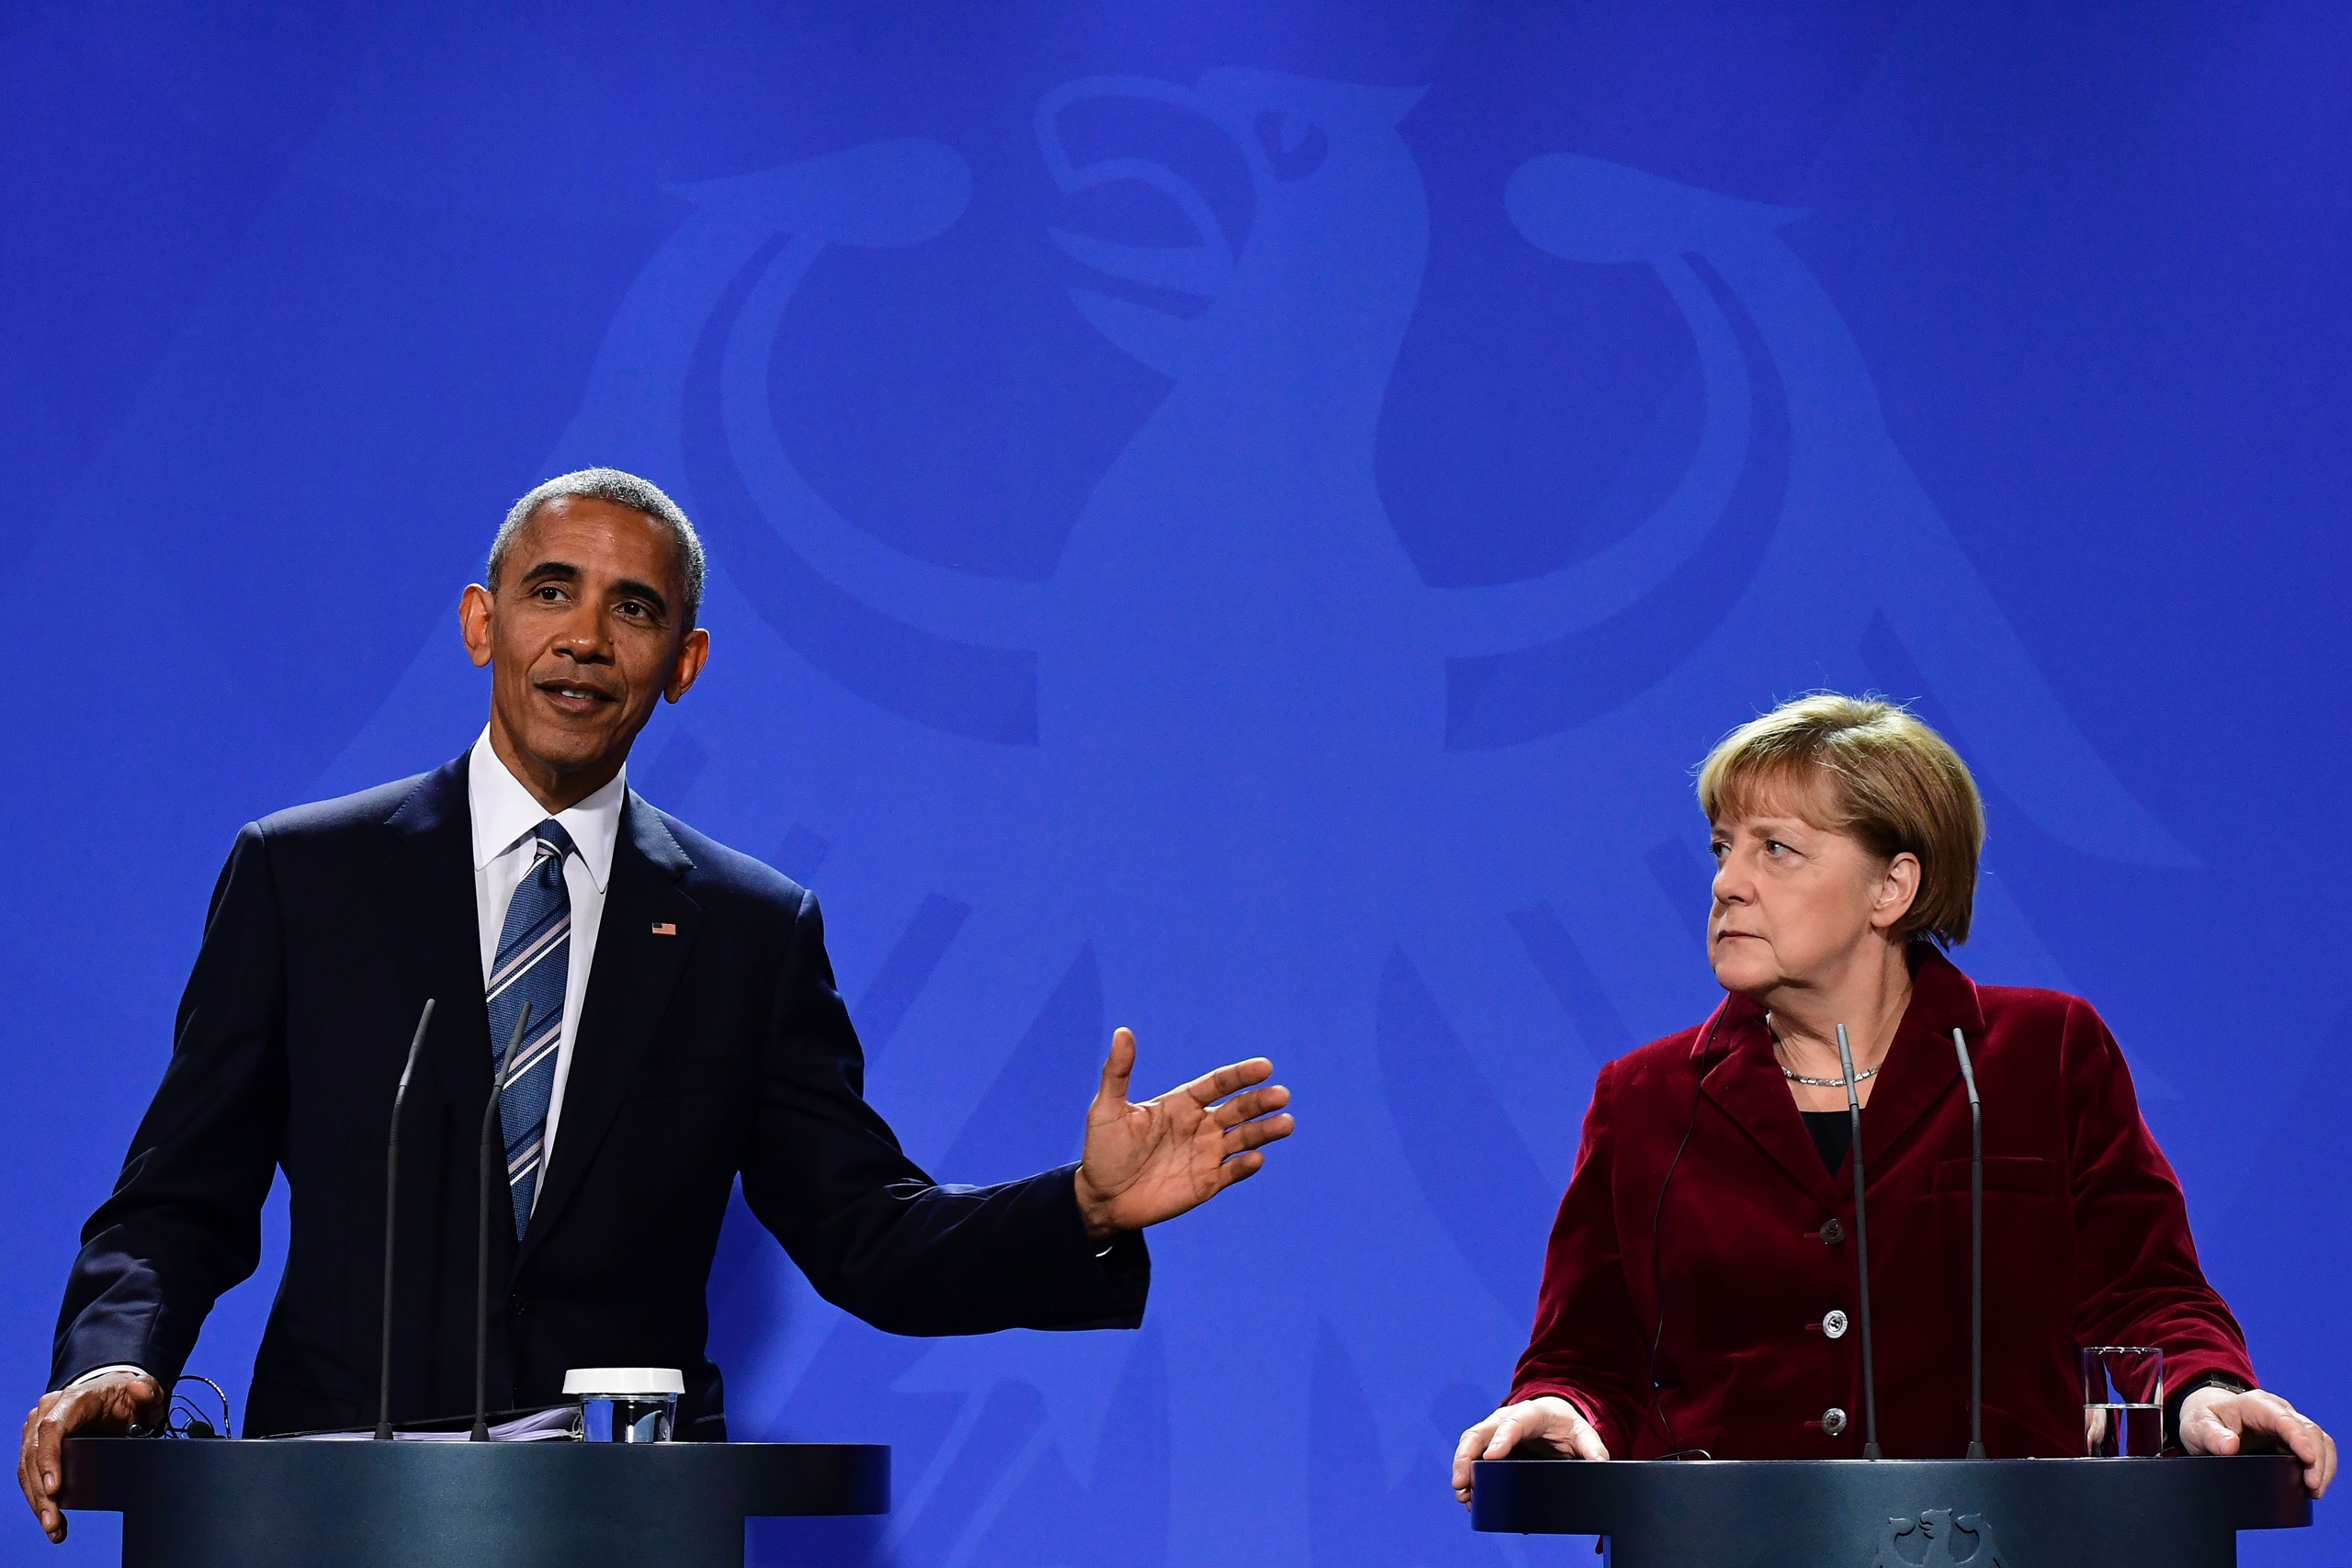 US President Barack Obama and German Chancellor Angela Merkel address a press conference after their meeting at the chancellery  in Berlin on Nov. 17, 2016.